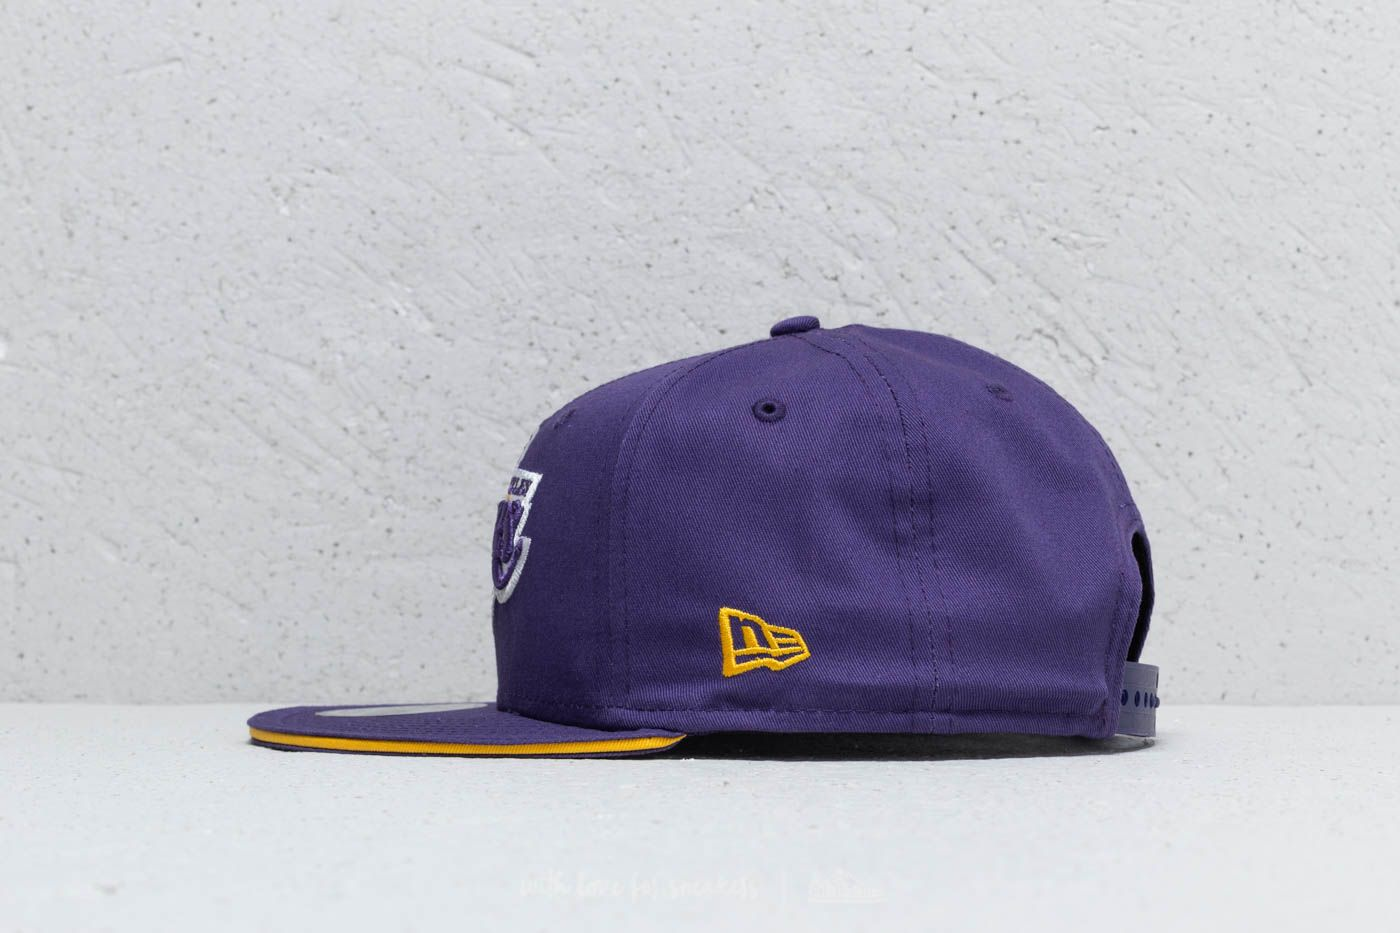 brand new b2cb6 518dc ... get new era 9fifty nba los angeles lakers cap purple at a great price  17 buy